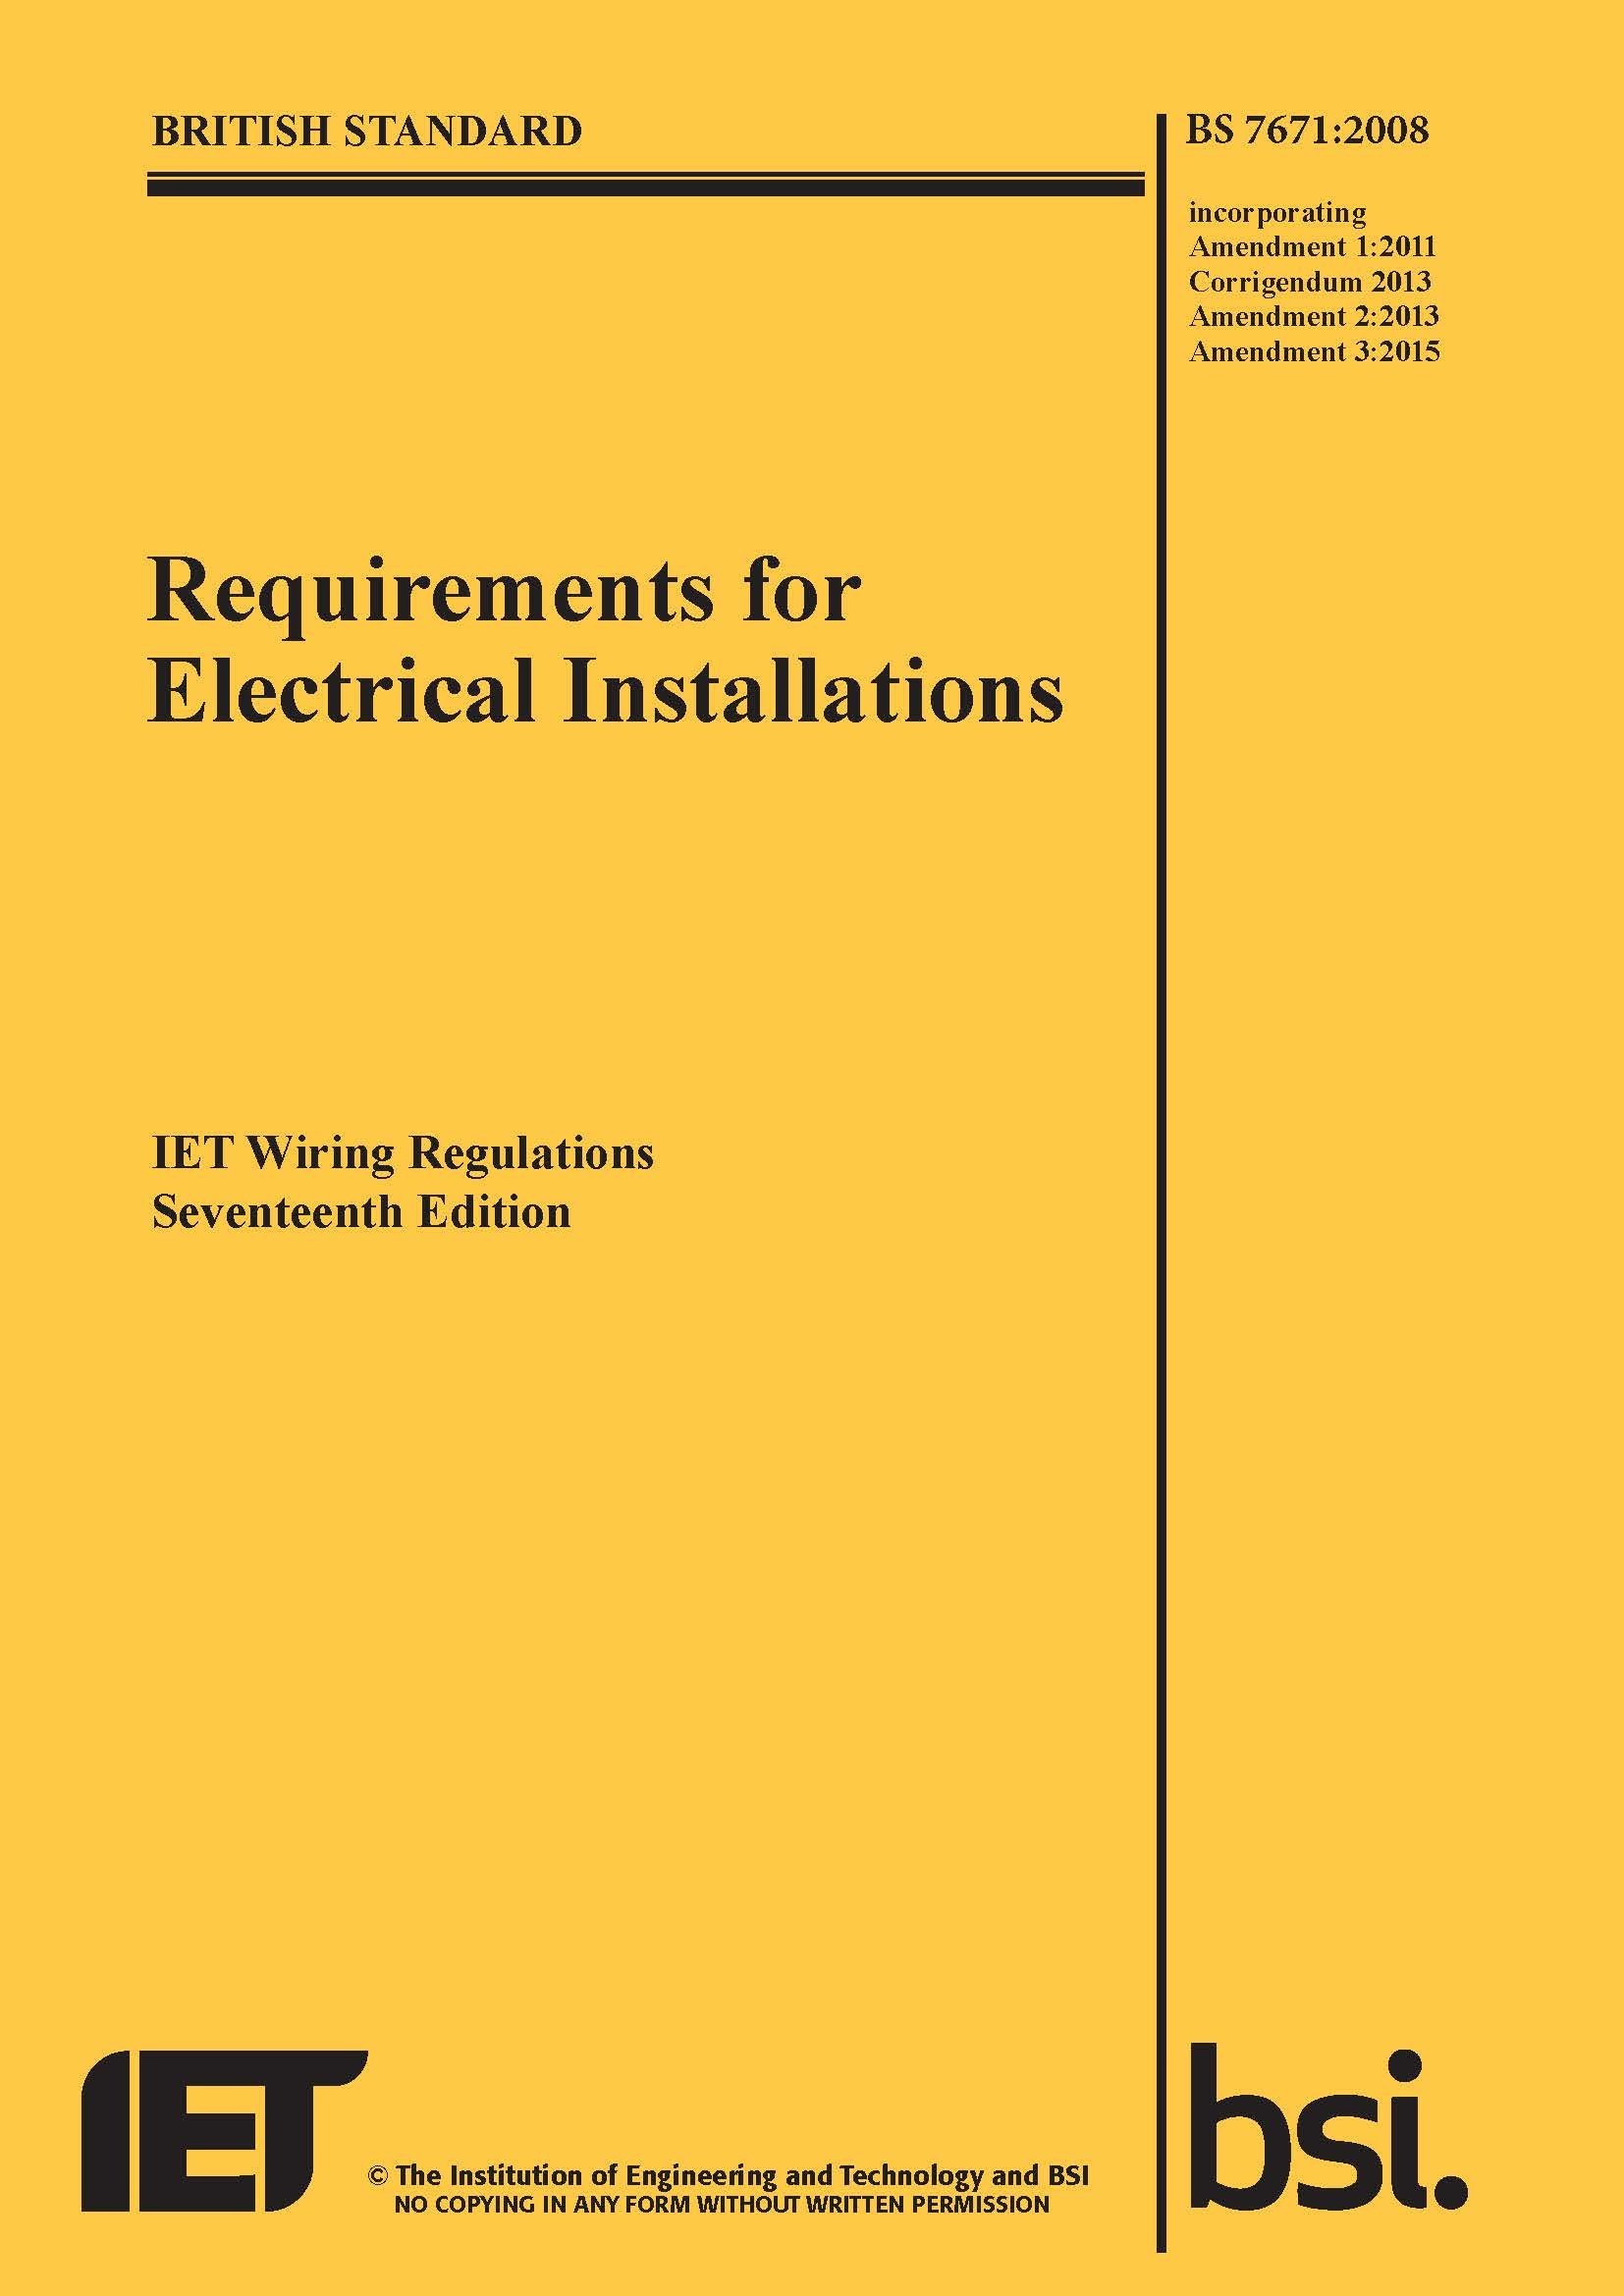 Iet Wiring Regulations  Bs7671 2008 Incorporating Amendment Number 3 2015  New Edition January